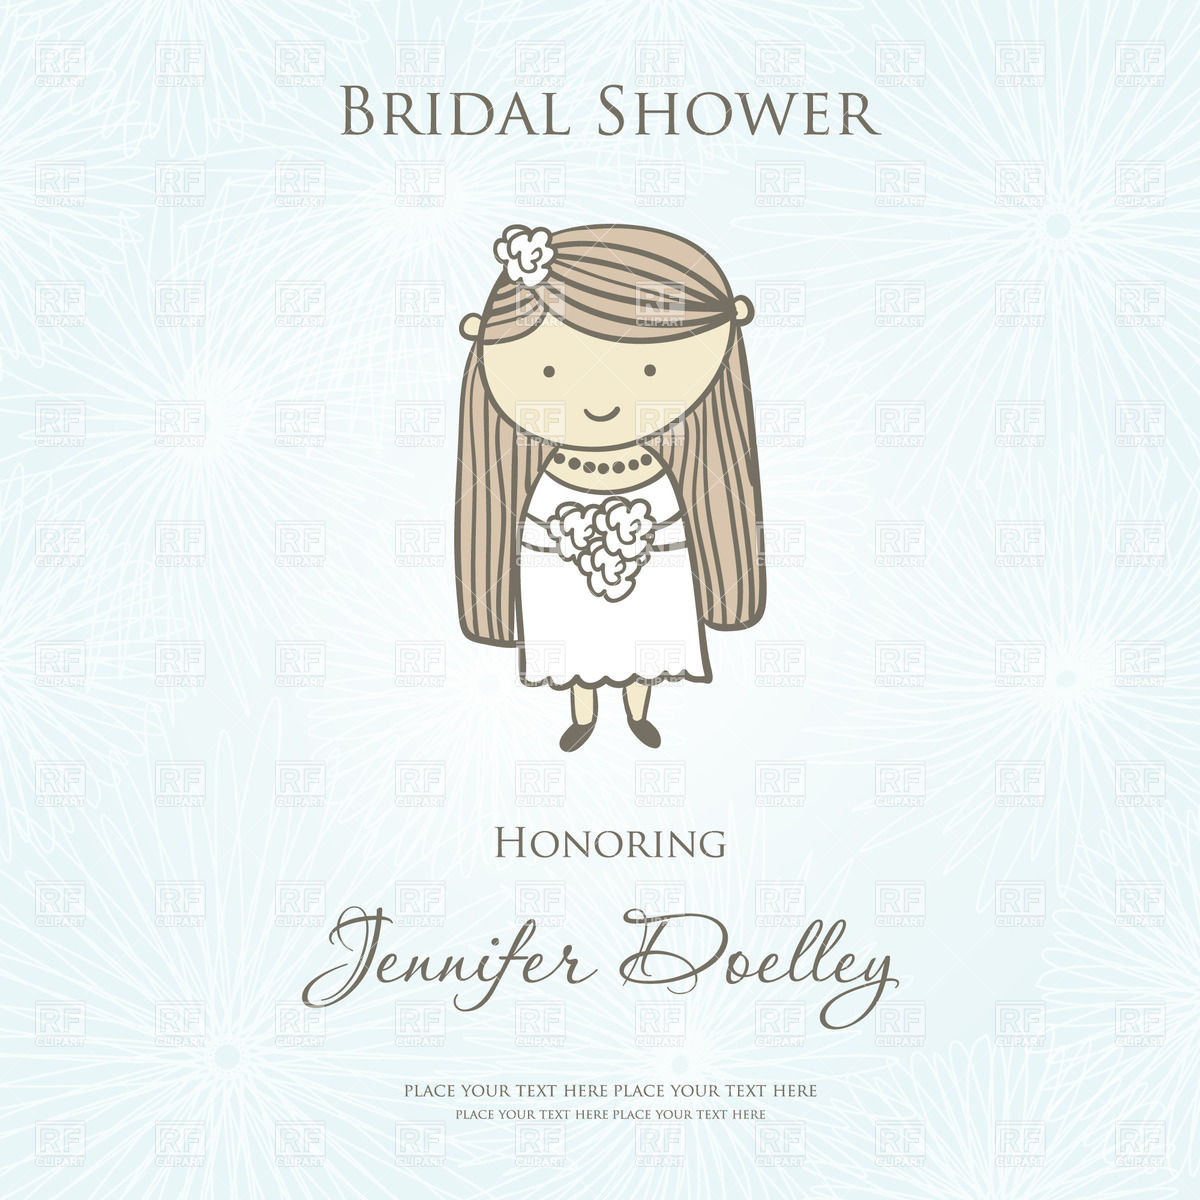 1200x1200 Wedding Invitation With Cute Cartoon Bride Vector Image Vector